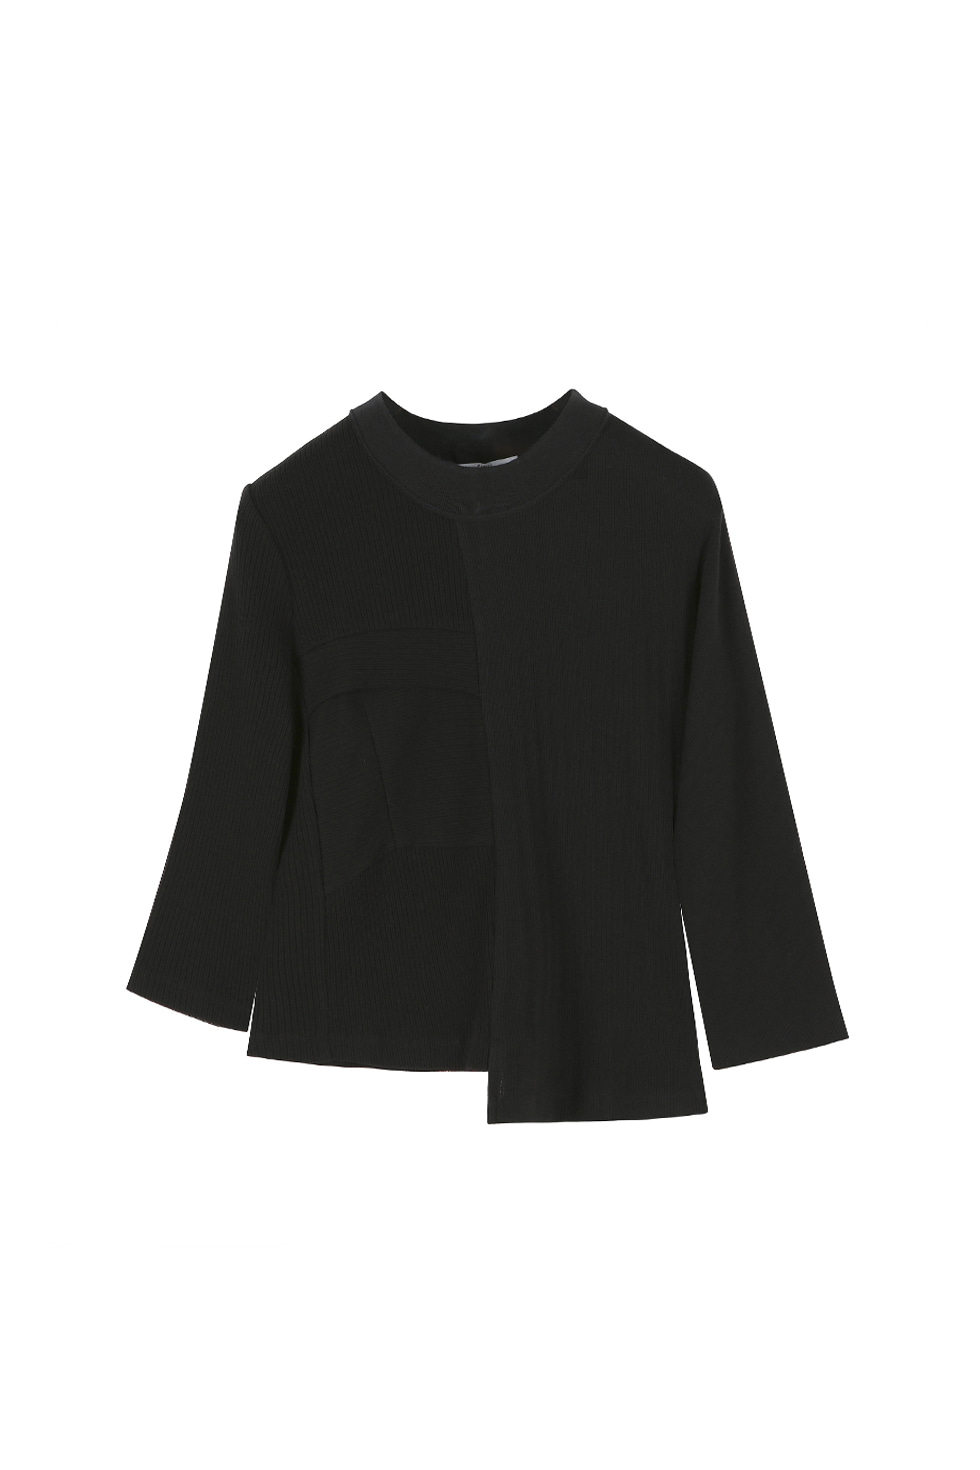 UNBALANCED JERSEY TOP - BLACK